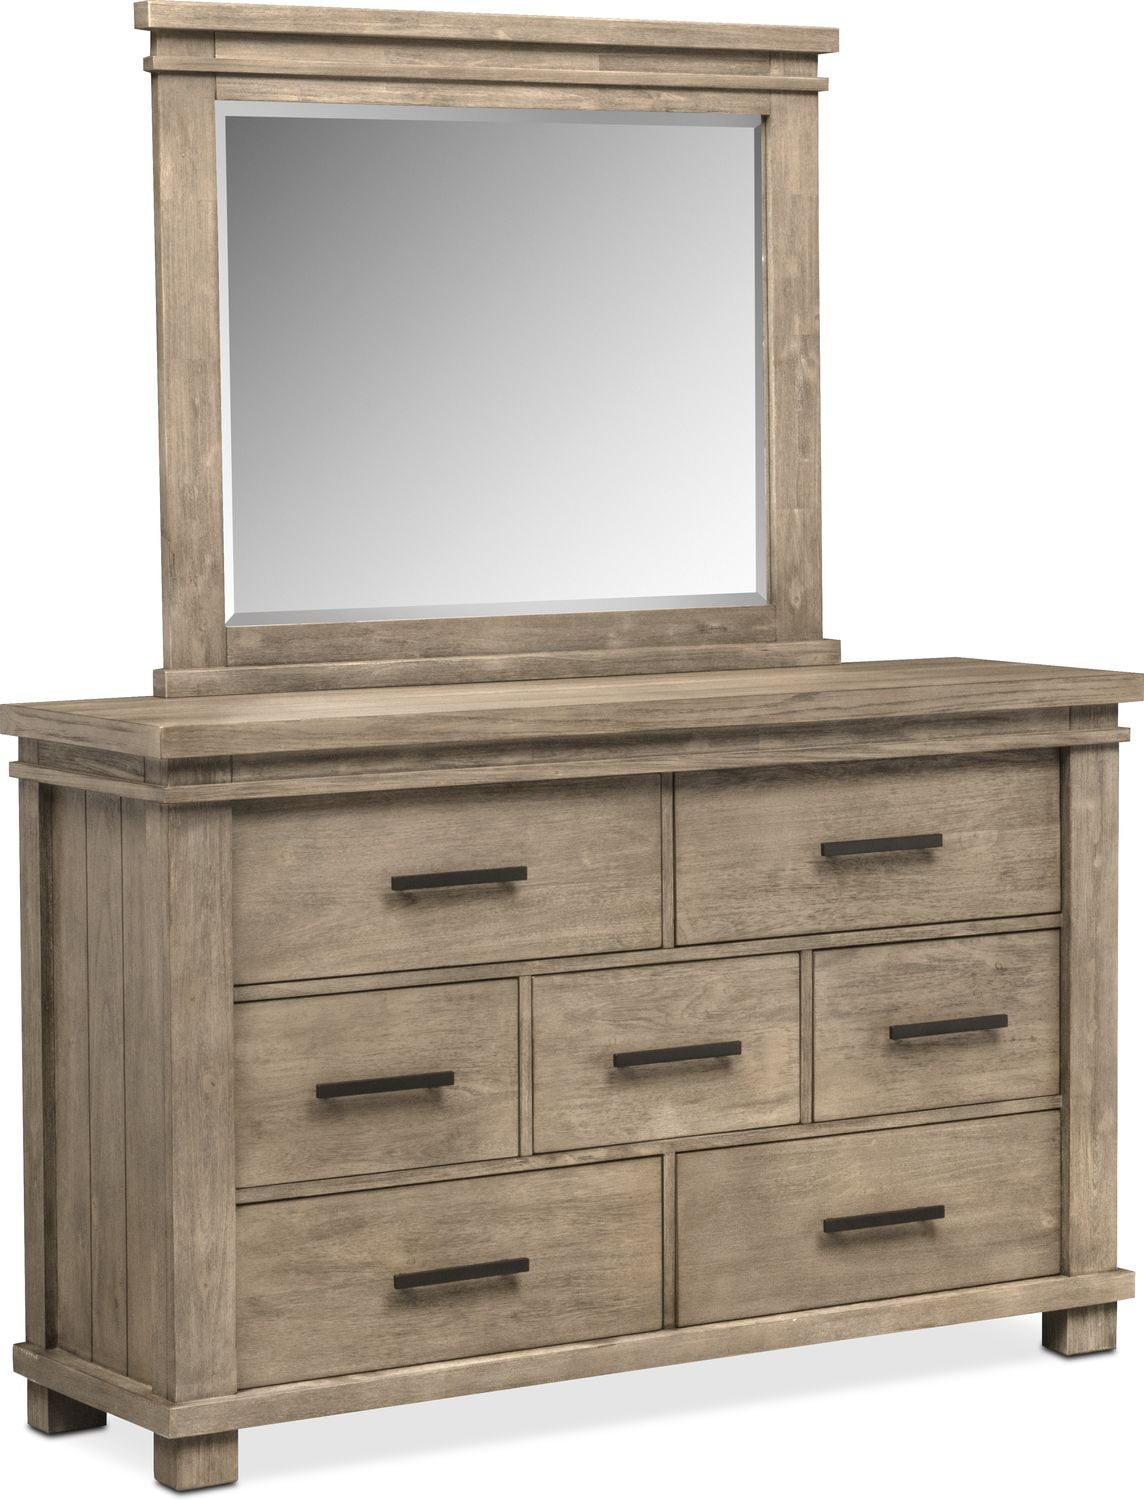 Tribeca Dresser And Mirror   Gray